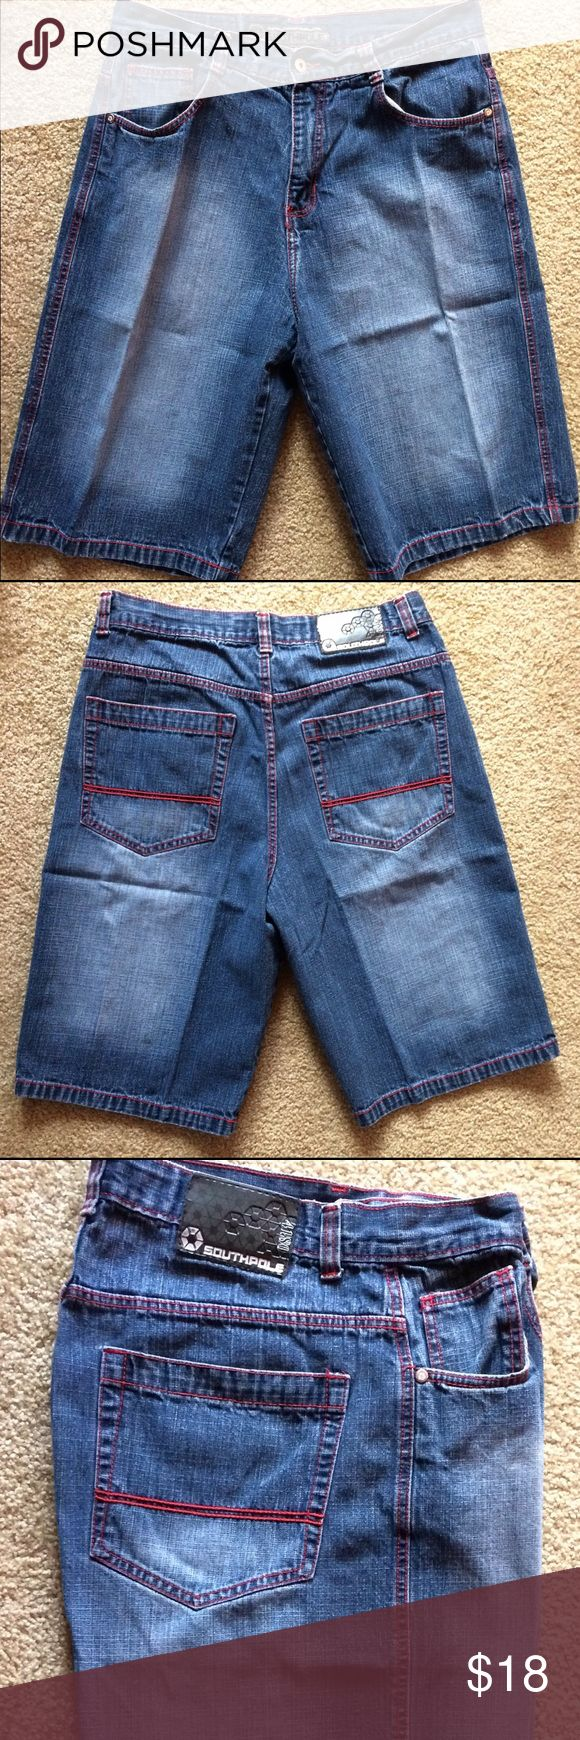 Men's Southpole Jean Shorts EUC! The ex is gone.....so the clothes need to go too! Please don't mind the wrinkles/creases. They've been folded in a pile. South Pole Shorts Jean Shorts